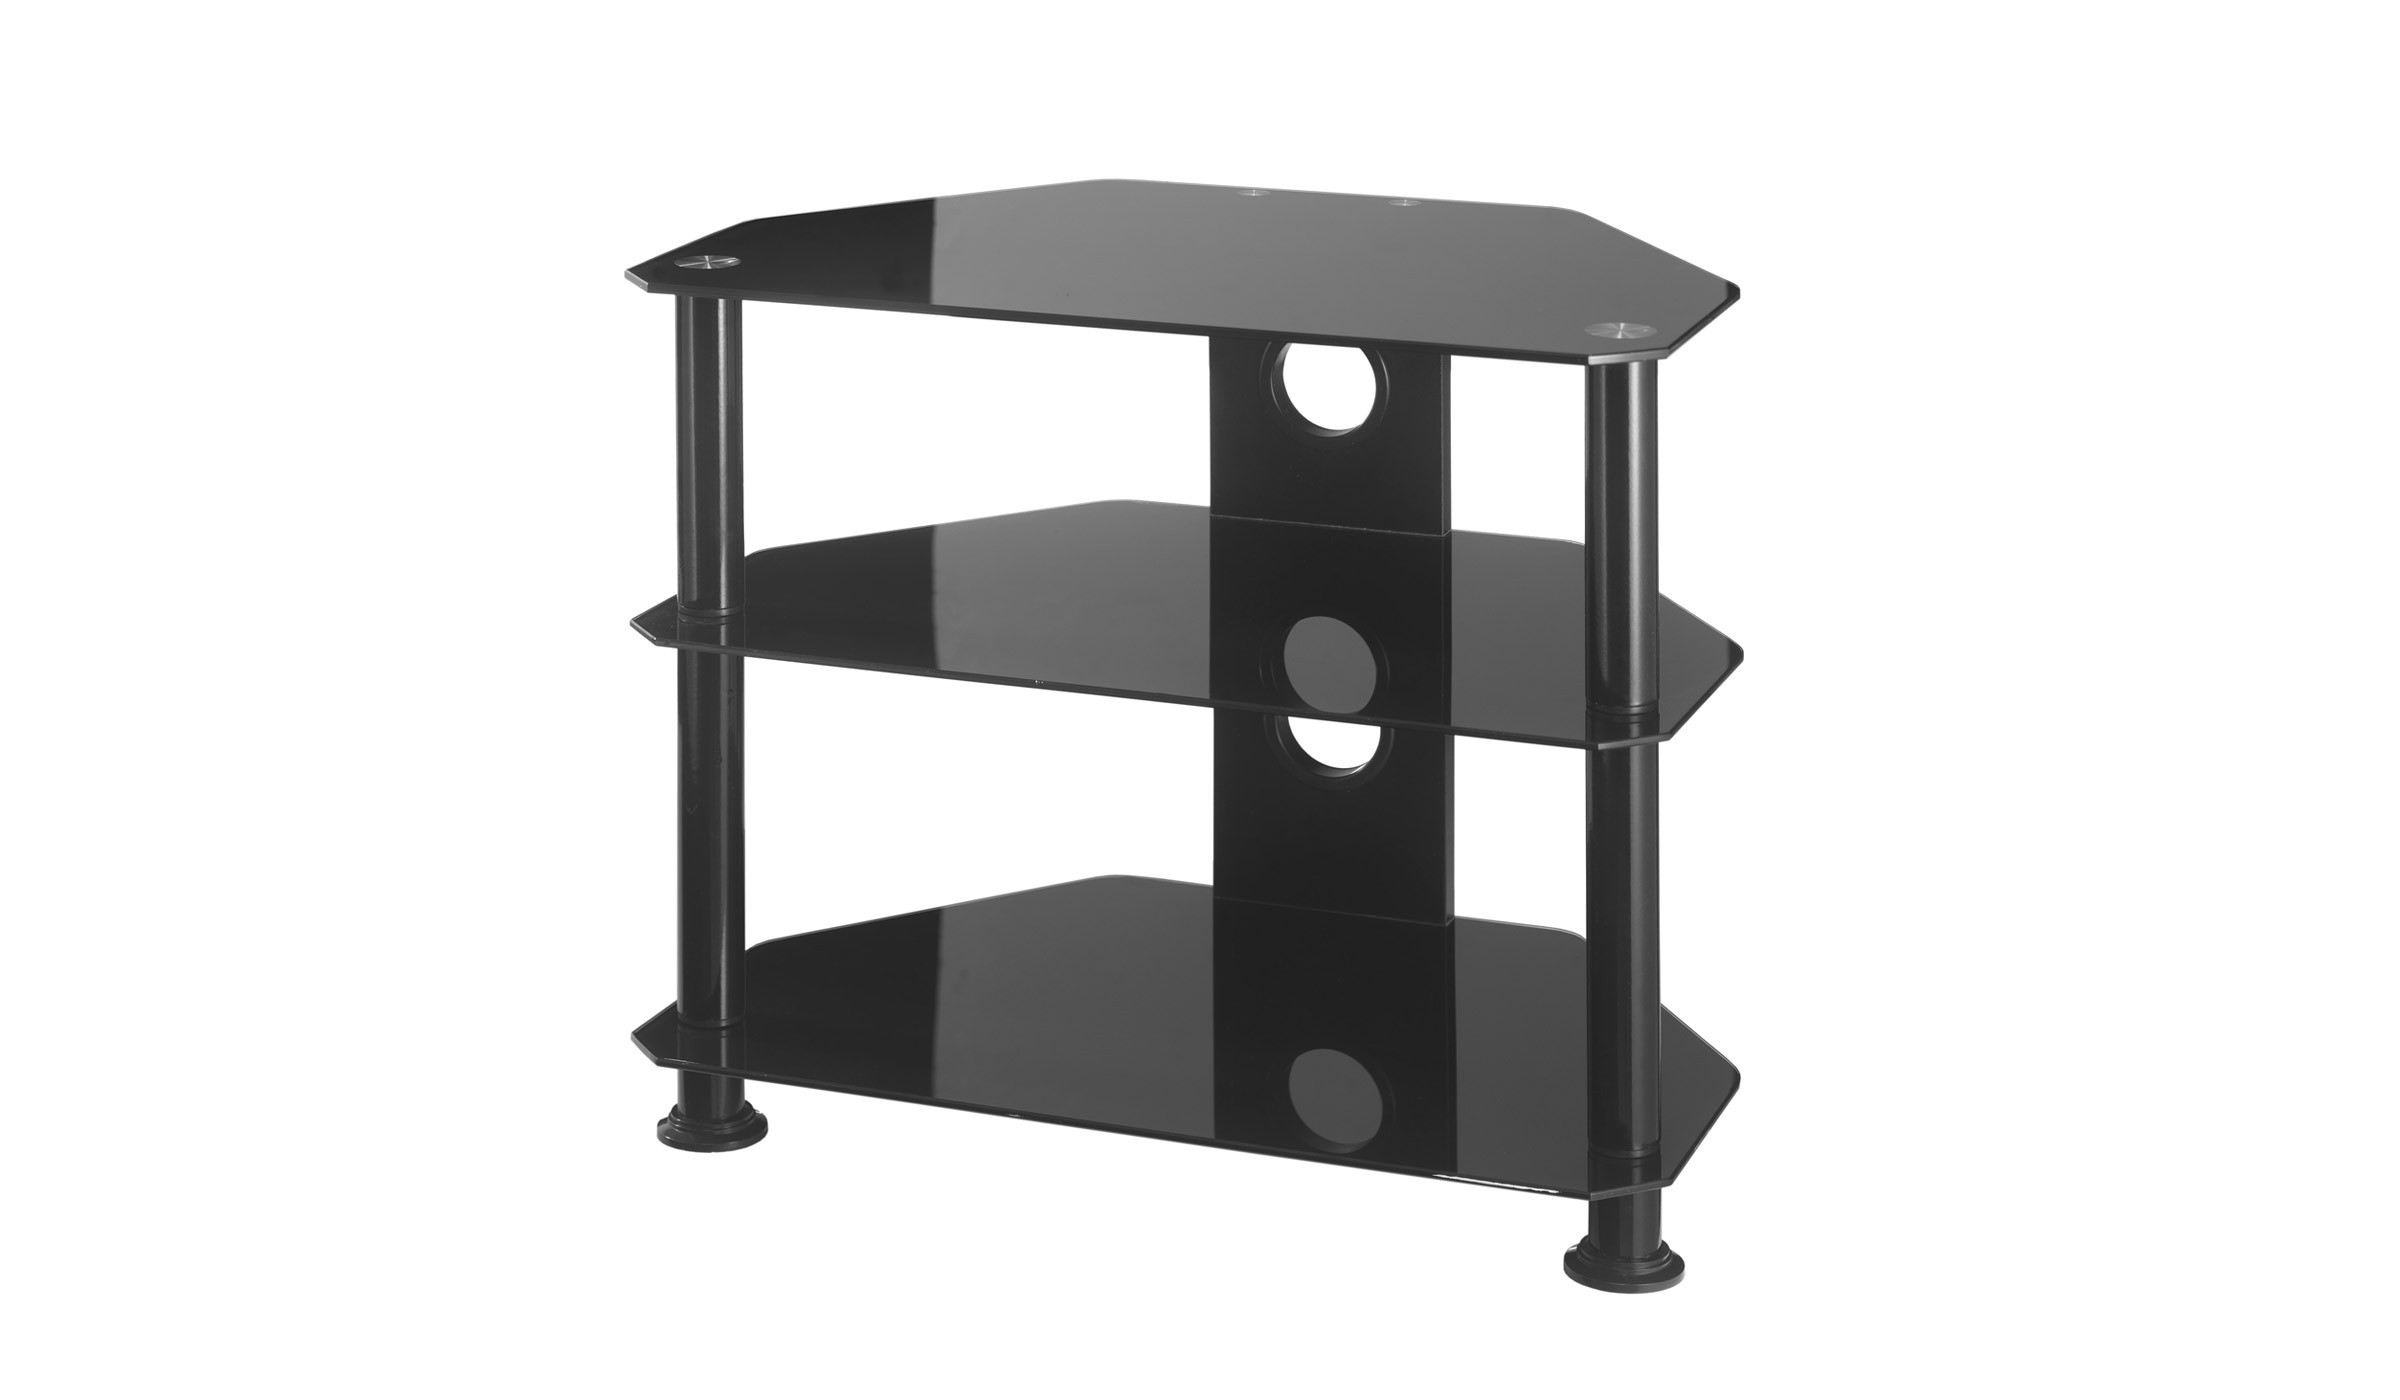 Most Popular Tv Stand Small Black Glass Corner Tv Stand – Furnish Ideas Regarding White Small Corner Tv Stands (View 10 of 20)